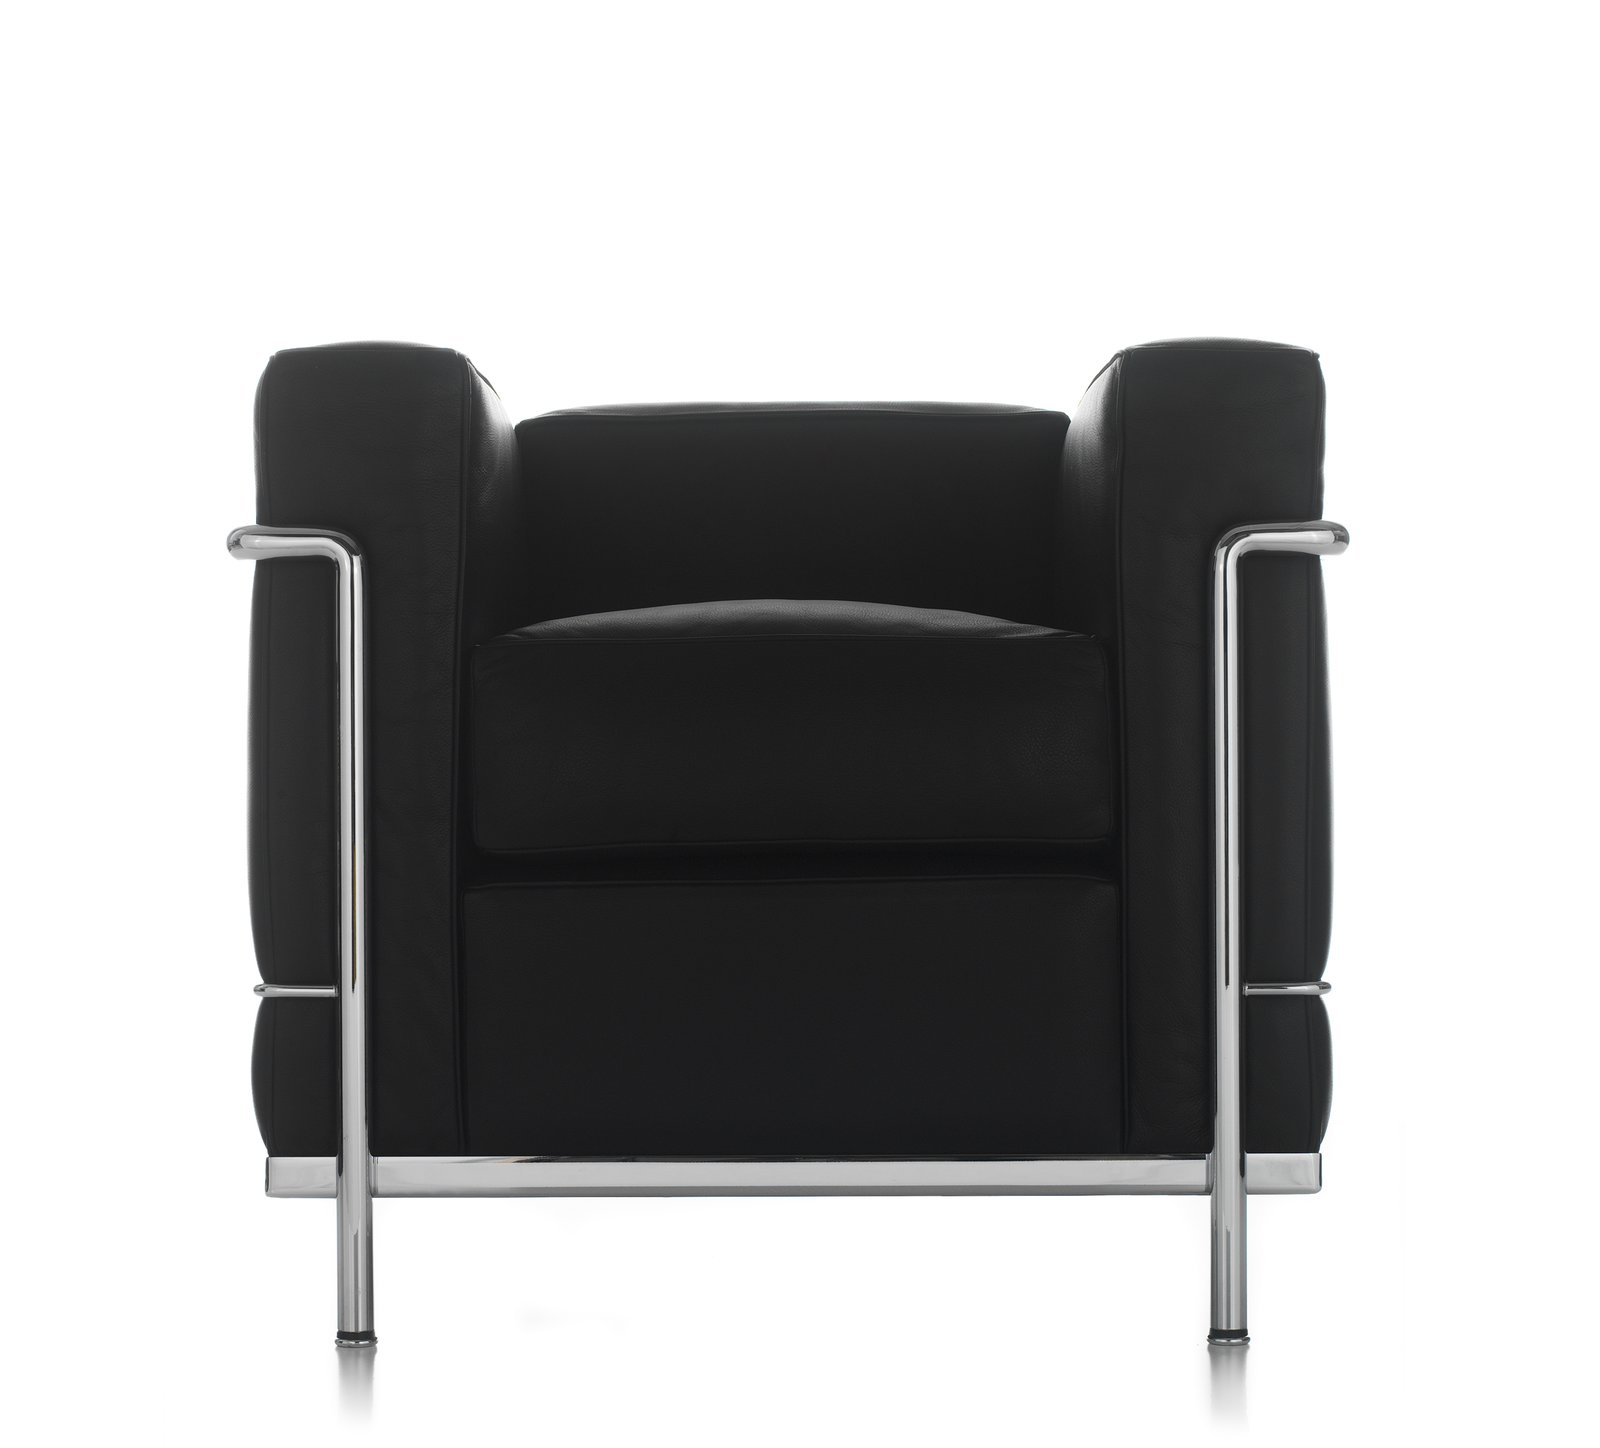 Inspired by a Maples club chair that caught Le Corbusier's eye, this cubical creation is one of Perriand's most famous designs. Decades later, it's still iconic, as anyone who's seen Maxell's famous ads from the '80s can attest.  Photo 5 of 8 in Design Icon: Charlotte Perriand